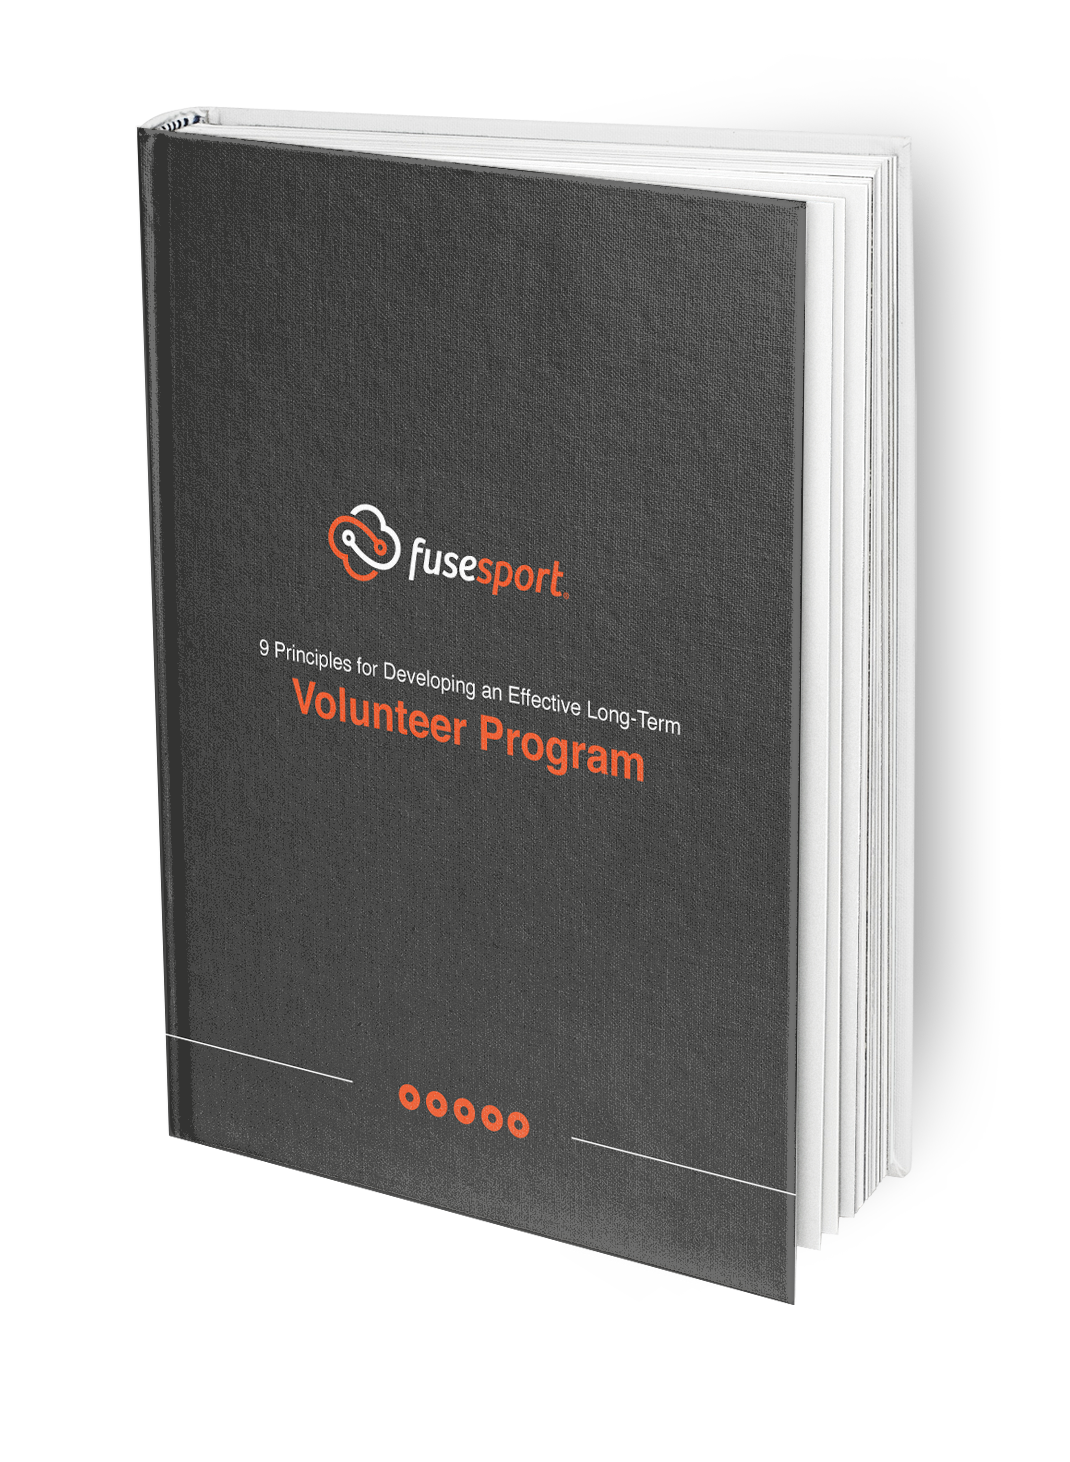 9 principles for developing an effective long-term volunteer program